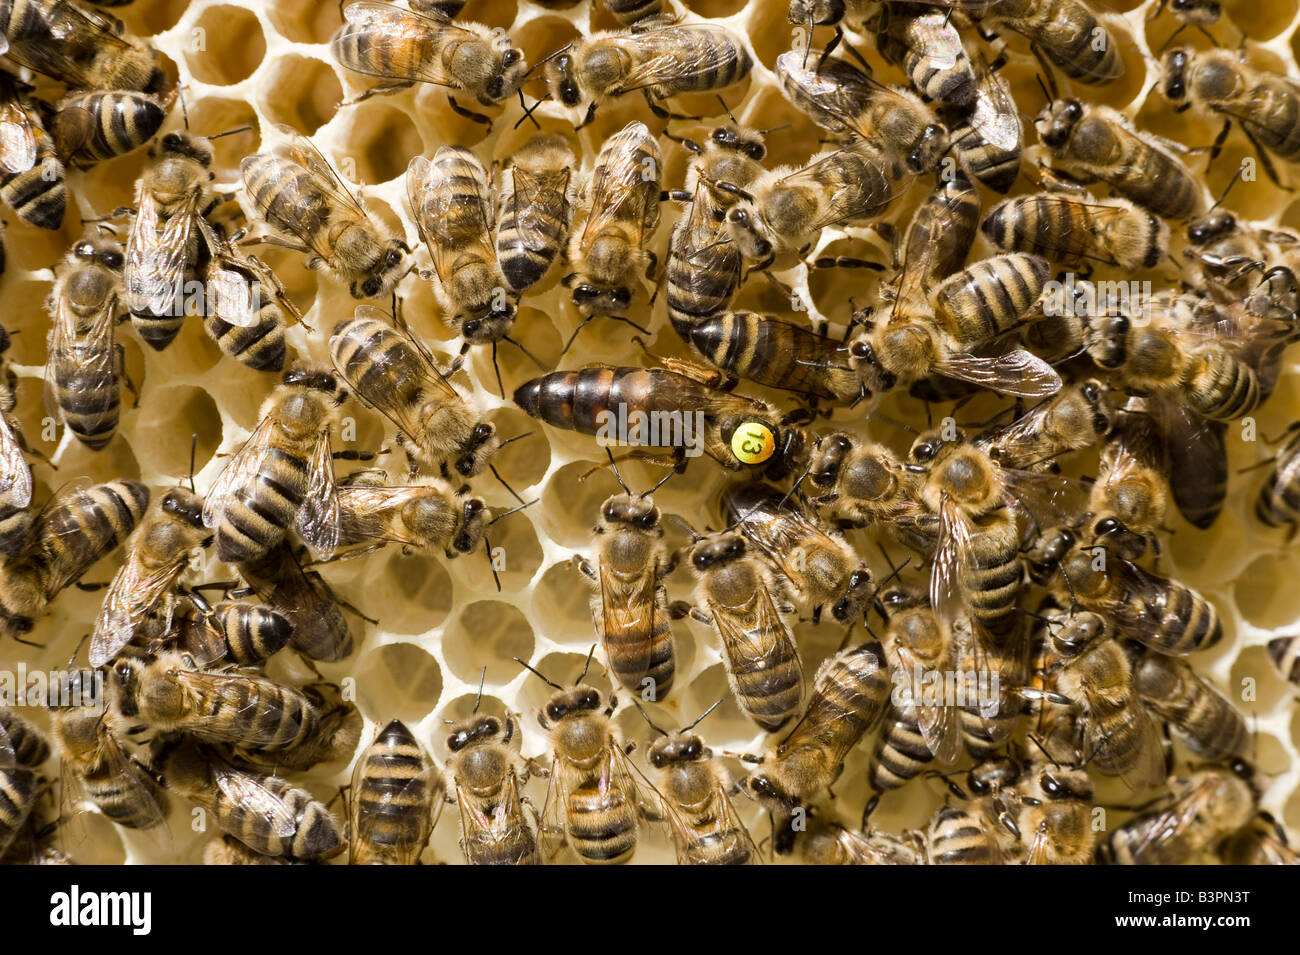 Bees (Apis melifera carnica) in a beehive, the queen is marked with a number - Stock Image